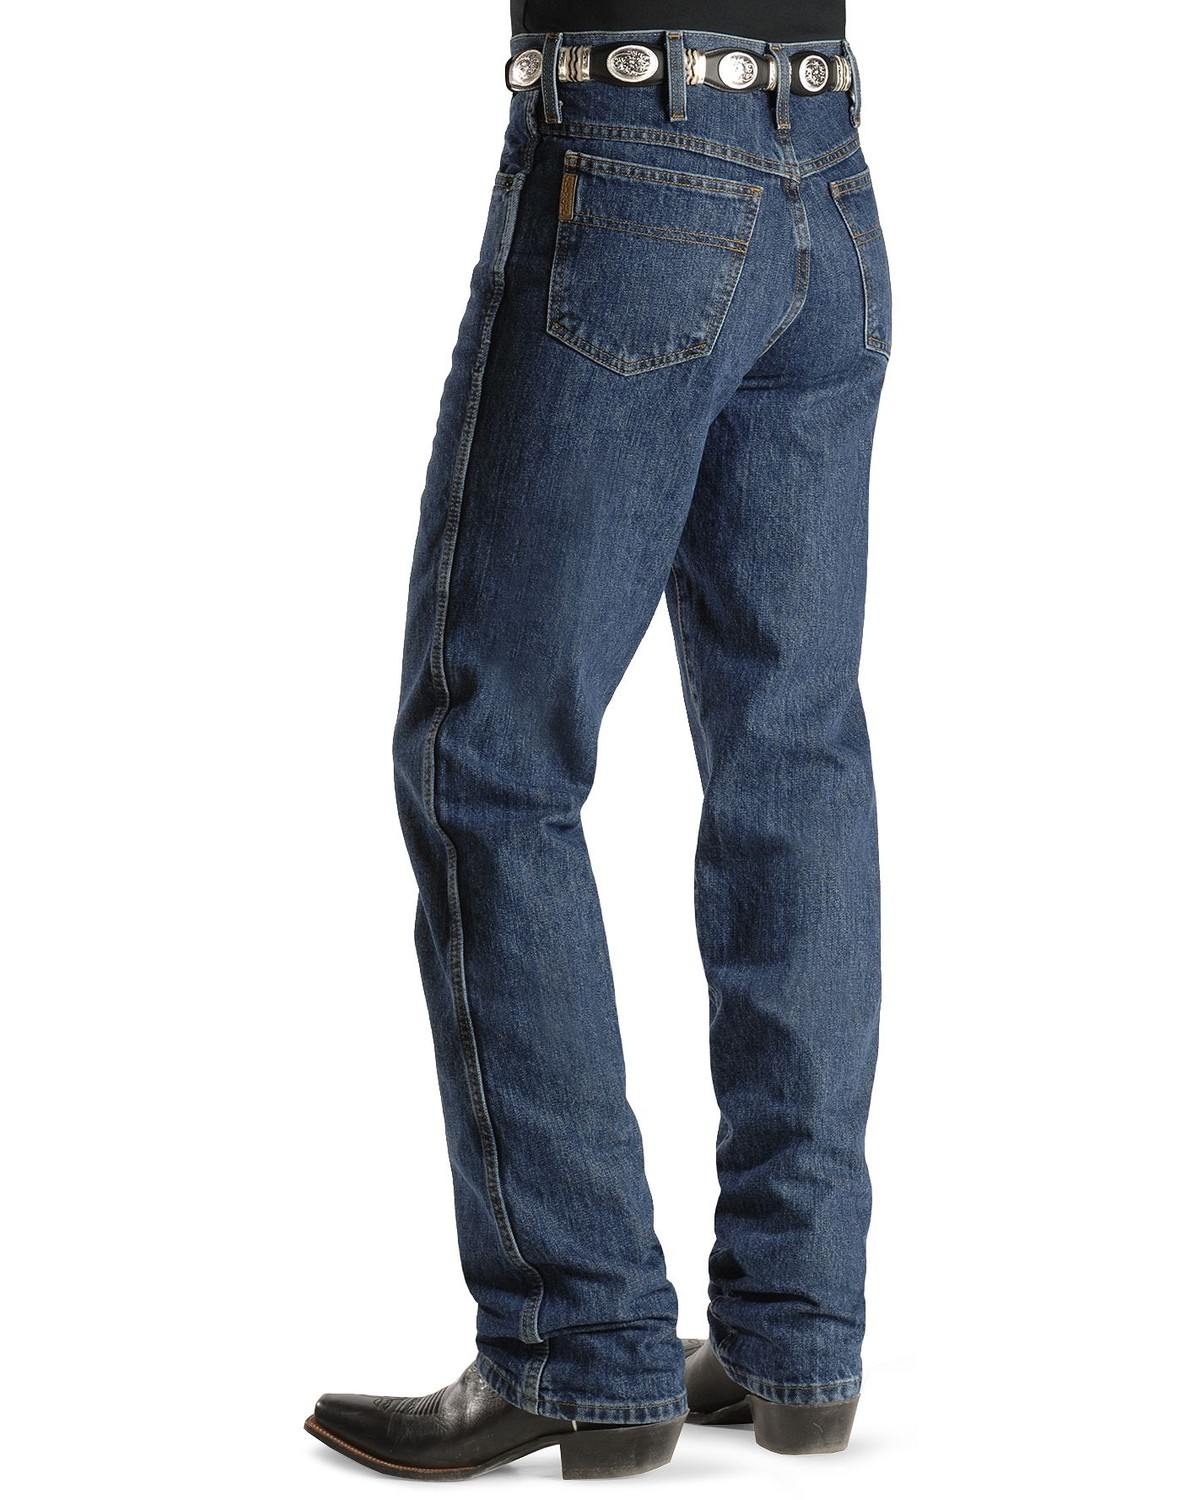 Men's jeans are a classic cowboy staple that look good everyday. At pdfdocnetwork.ga we have a large selection of new styles from top brands including Ariat, Cinch, Rock & Roll Cowboy, Levi's, Silver Jeans Co. and more.